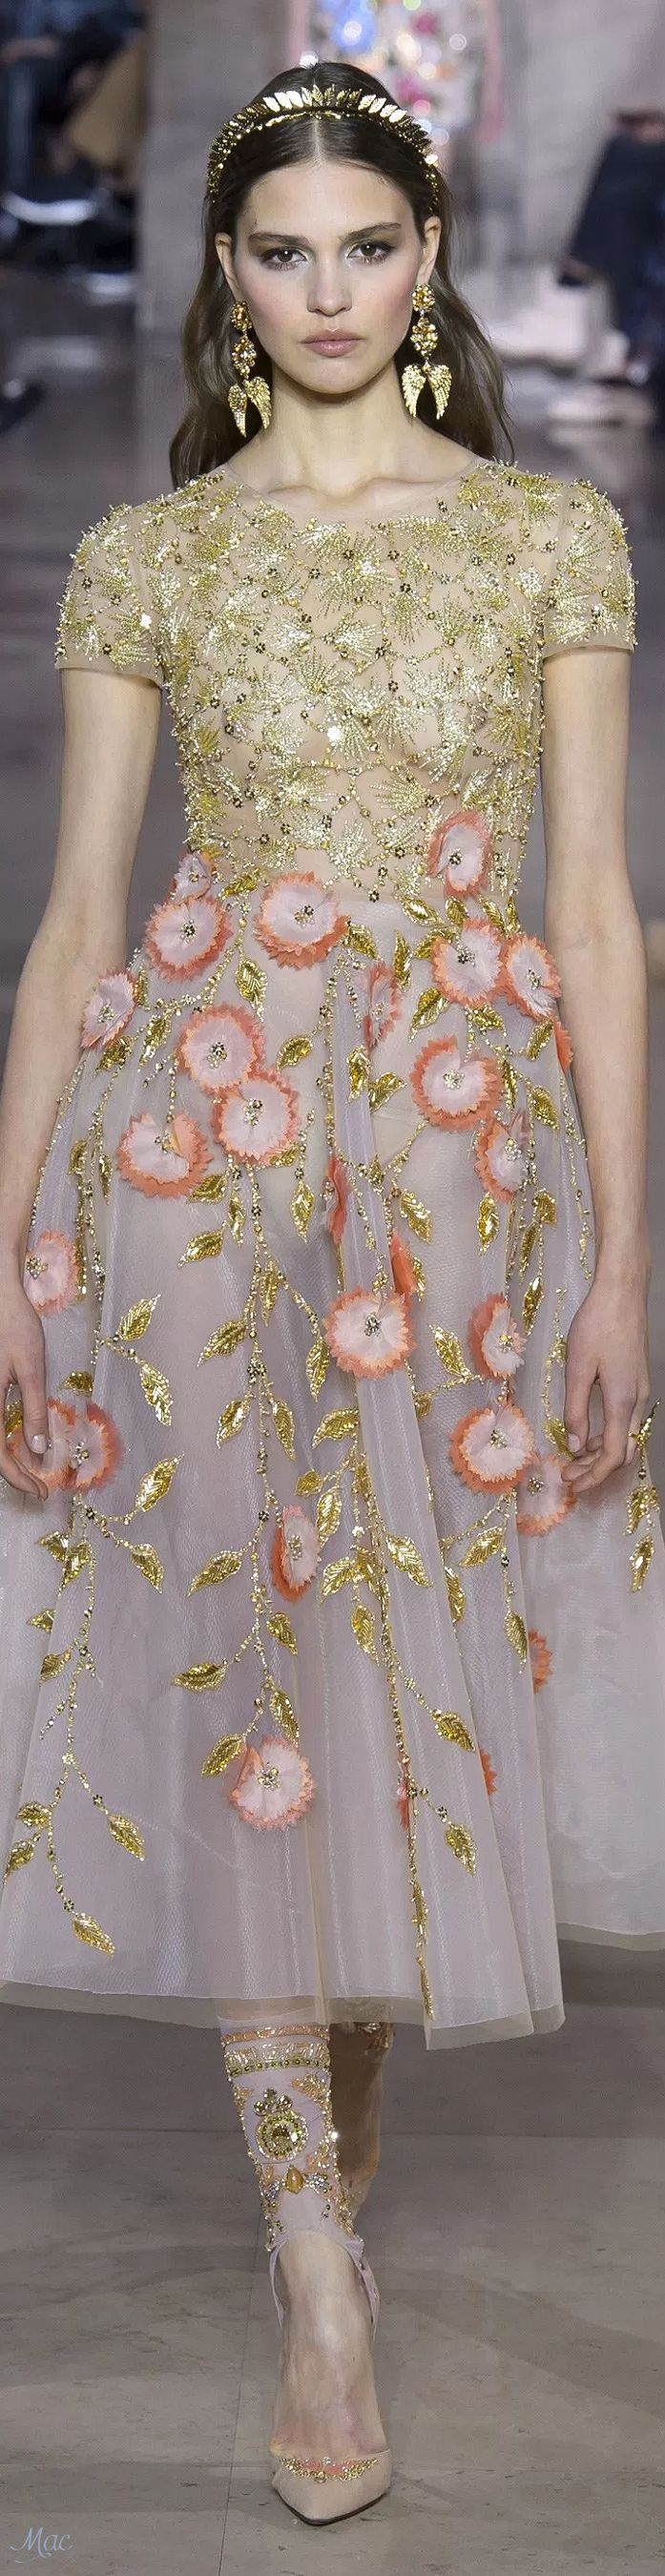 Spring 2018 Haute Couture Georges Hobeika